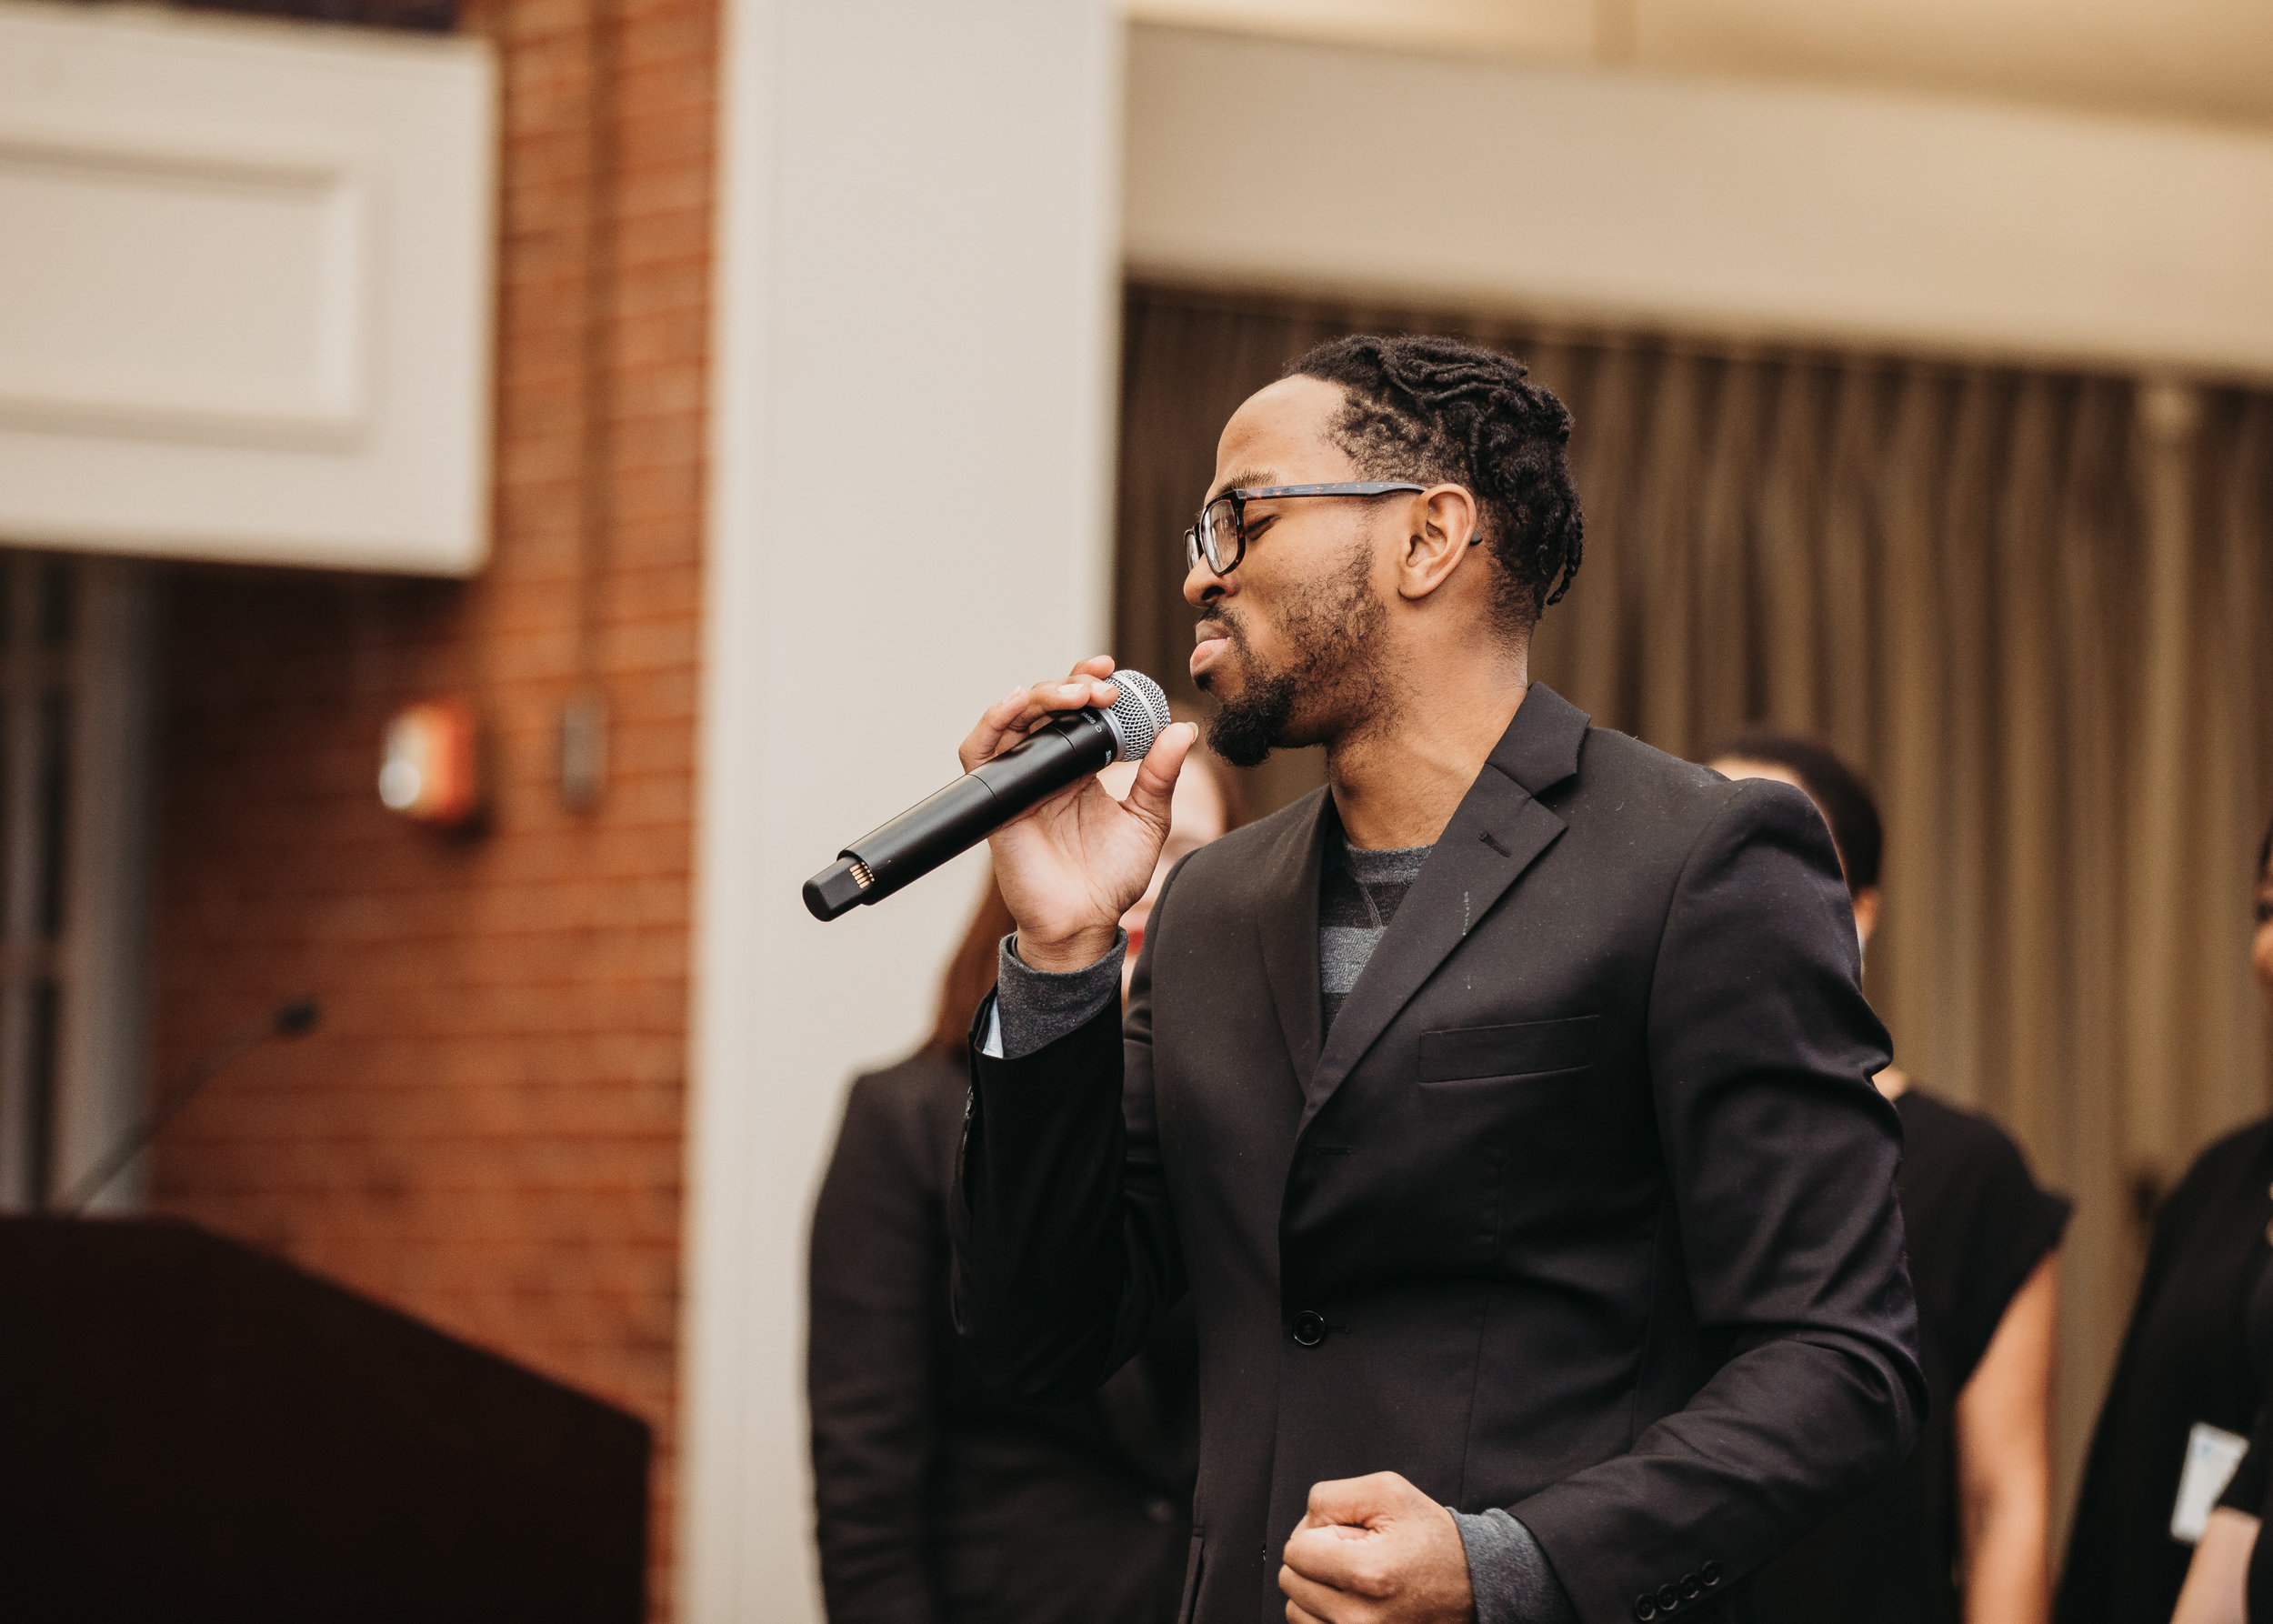 Gospel performance at the MLK Luncheon at Bentley University. Boston corporate and higher education event photographer Joy LeDuc.